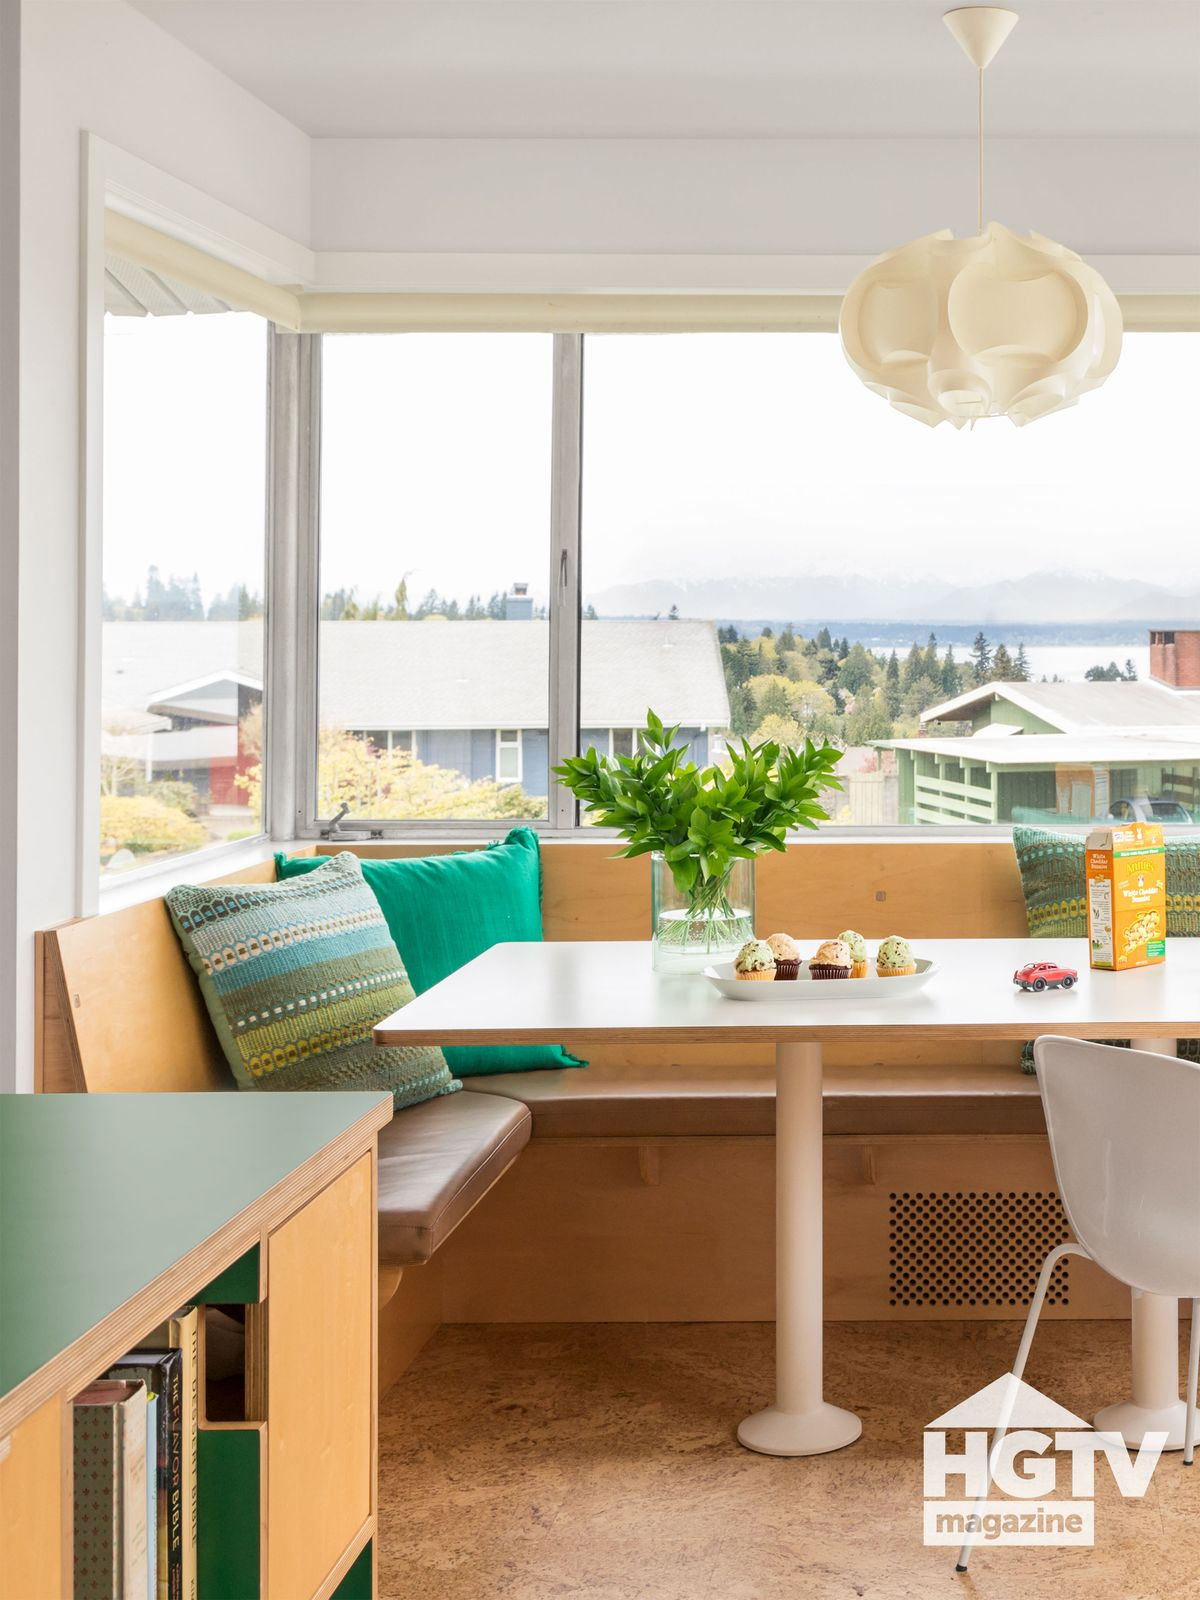 A 1960s style breakfast nook from HGTV Magazine